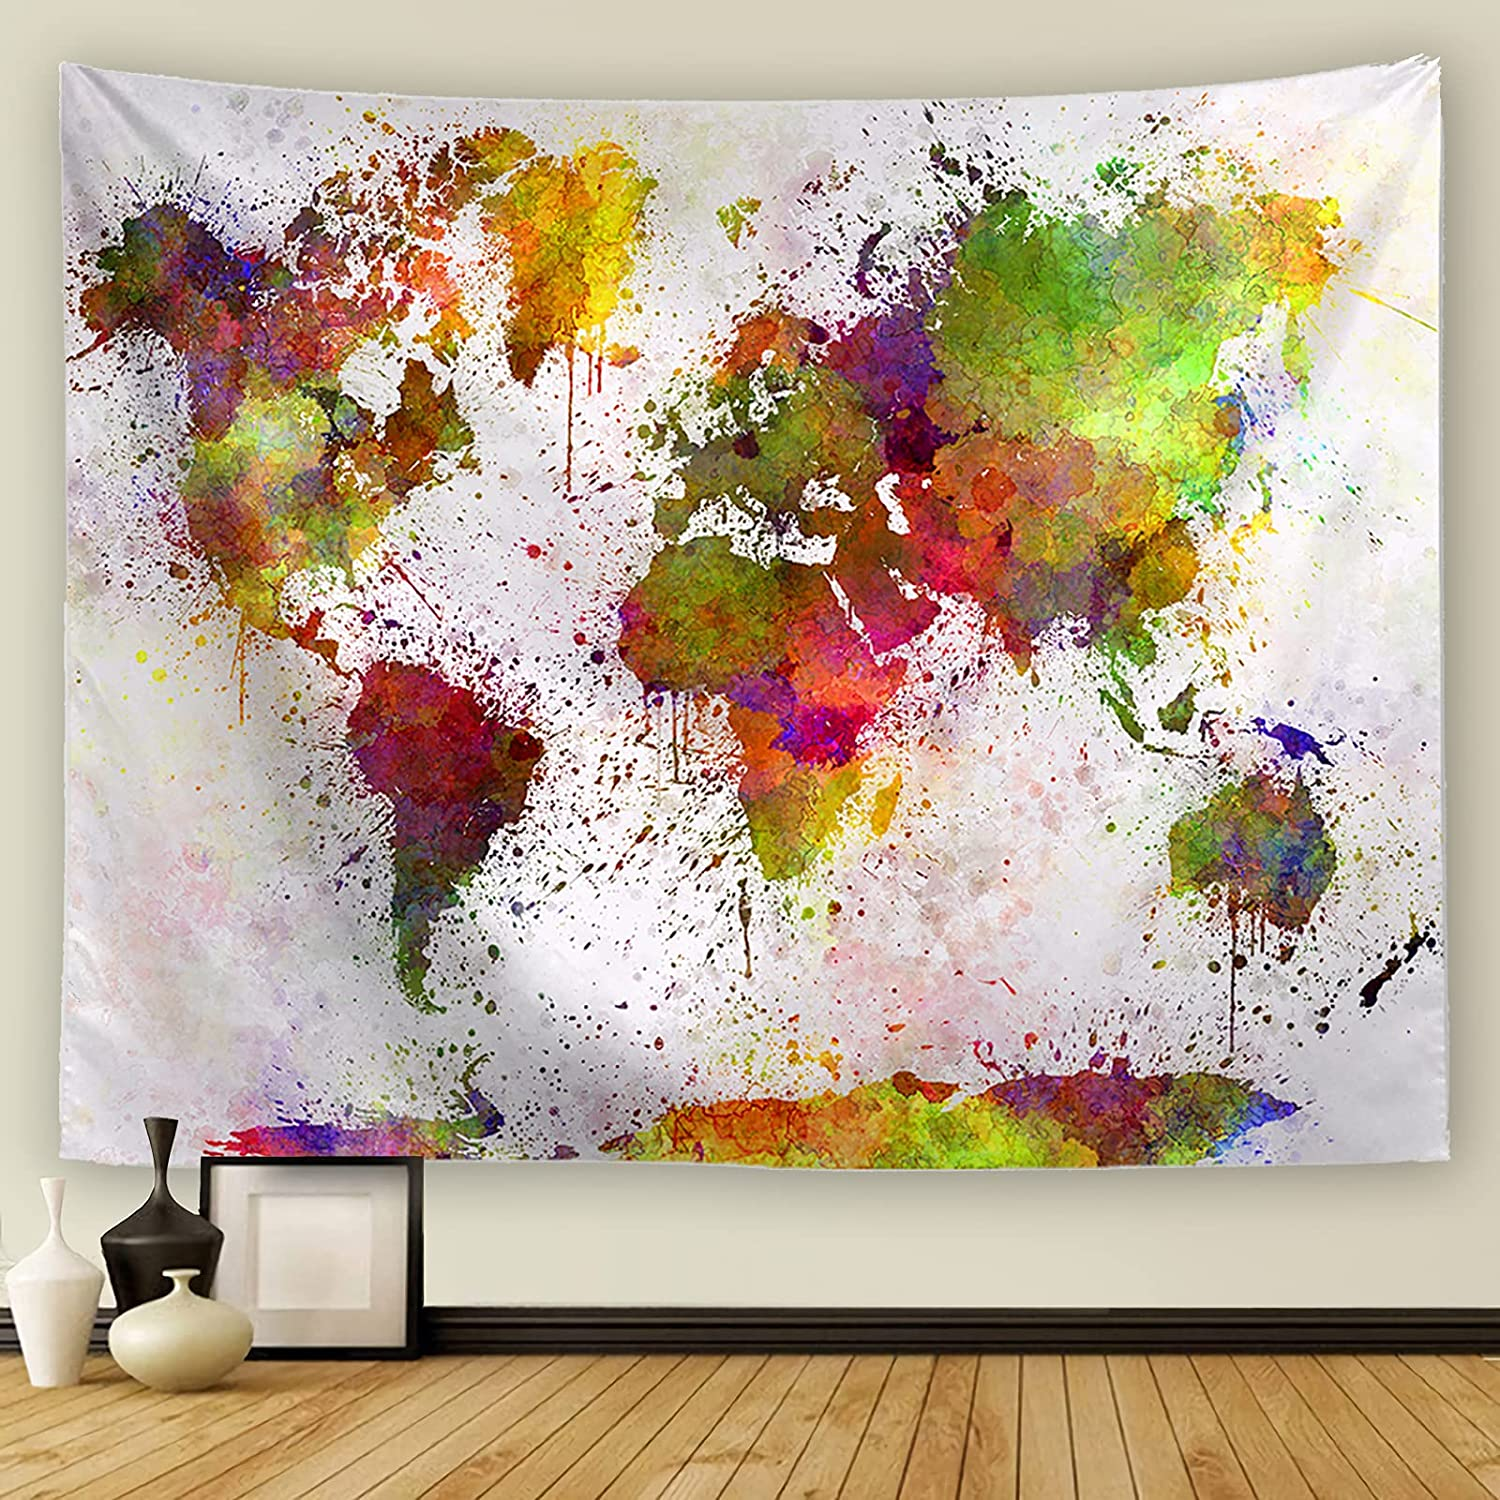 Yeacun Colorful Watercolor World Map Tapestry Abstract Splatter Painting Tapestry Wall Hanging Art Wall Hanging for Living Room Bedroom Dorm Home Decor(60L x 50W inches)